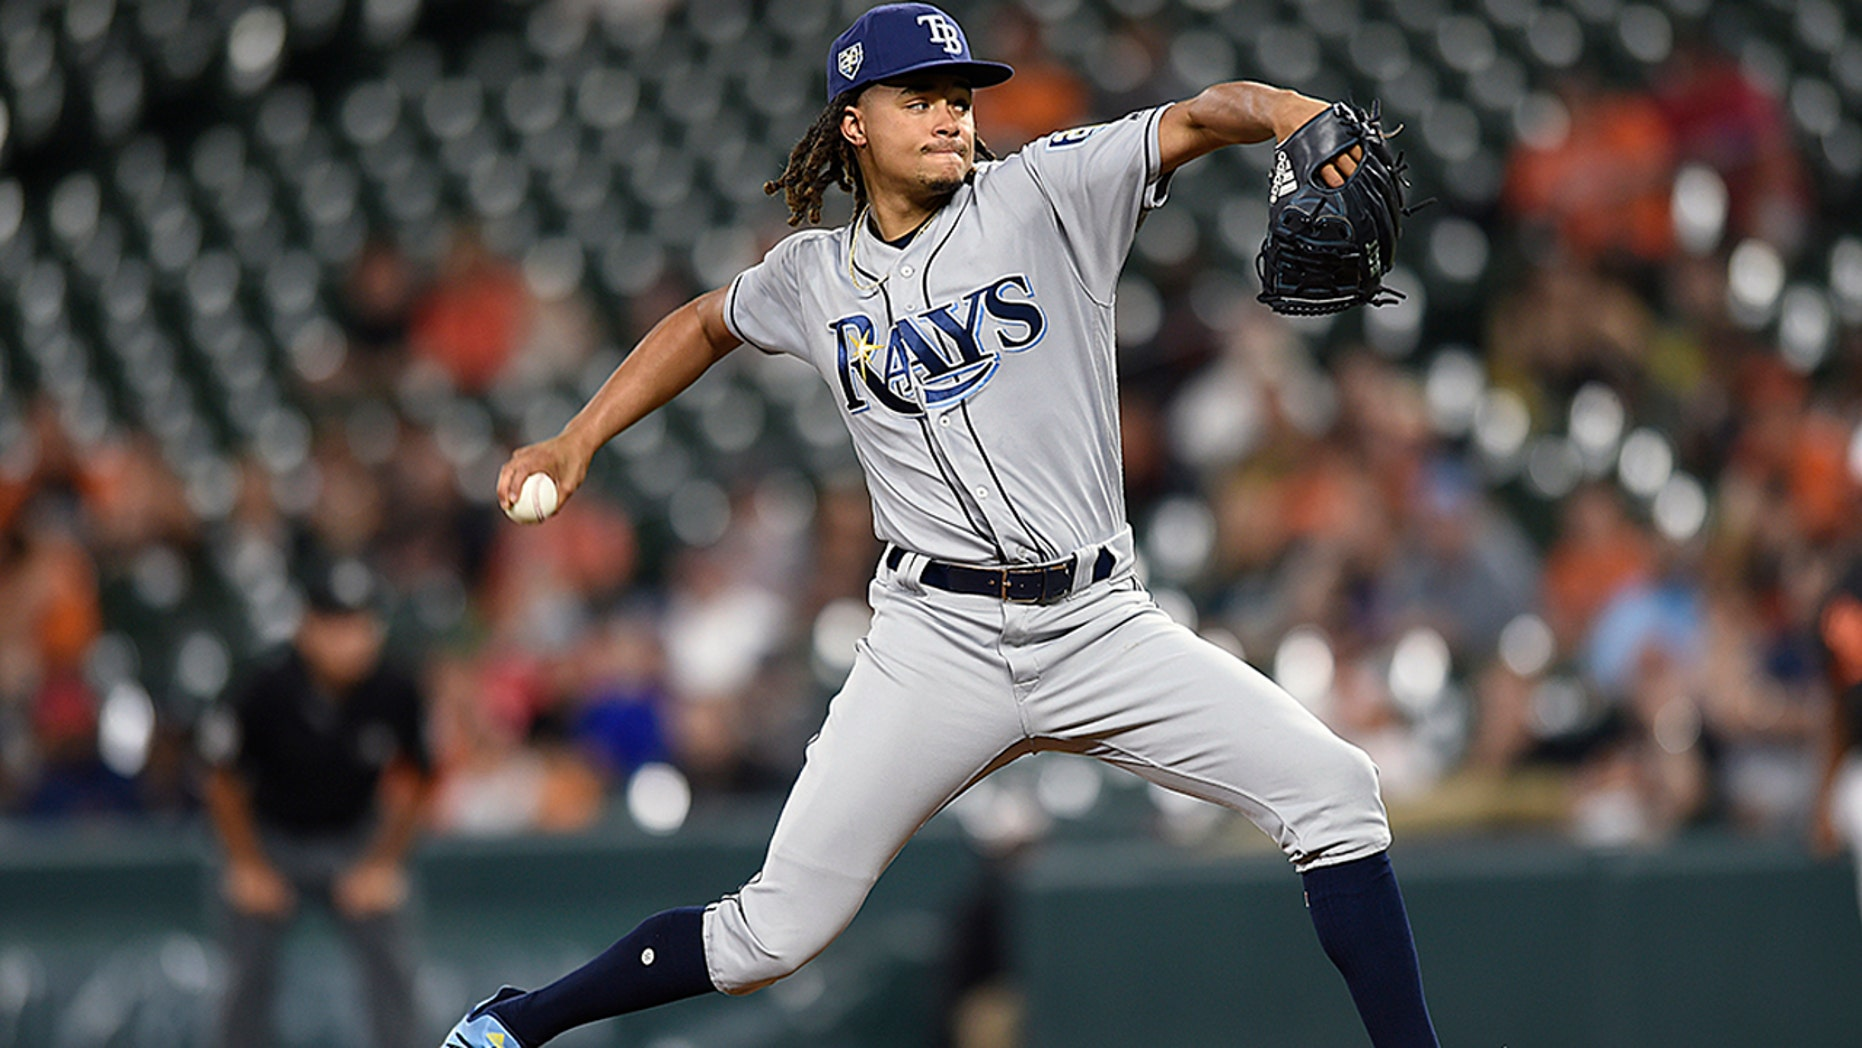 Tampa Bay Rays pitcher Chris Archer throws against the Baltimore Orioles in the first inning of a baseball game, Friday, July 27, 2018, in Baltimore. (AP Photo/Gail Burton)